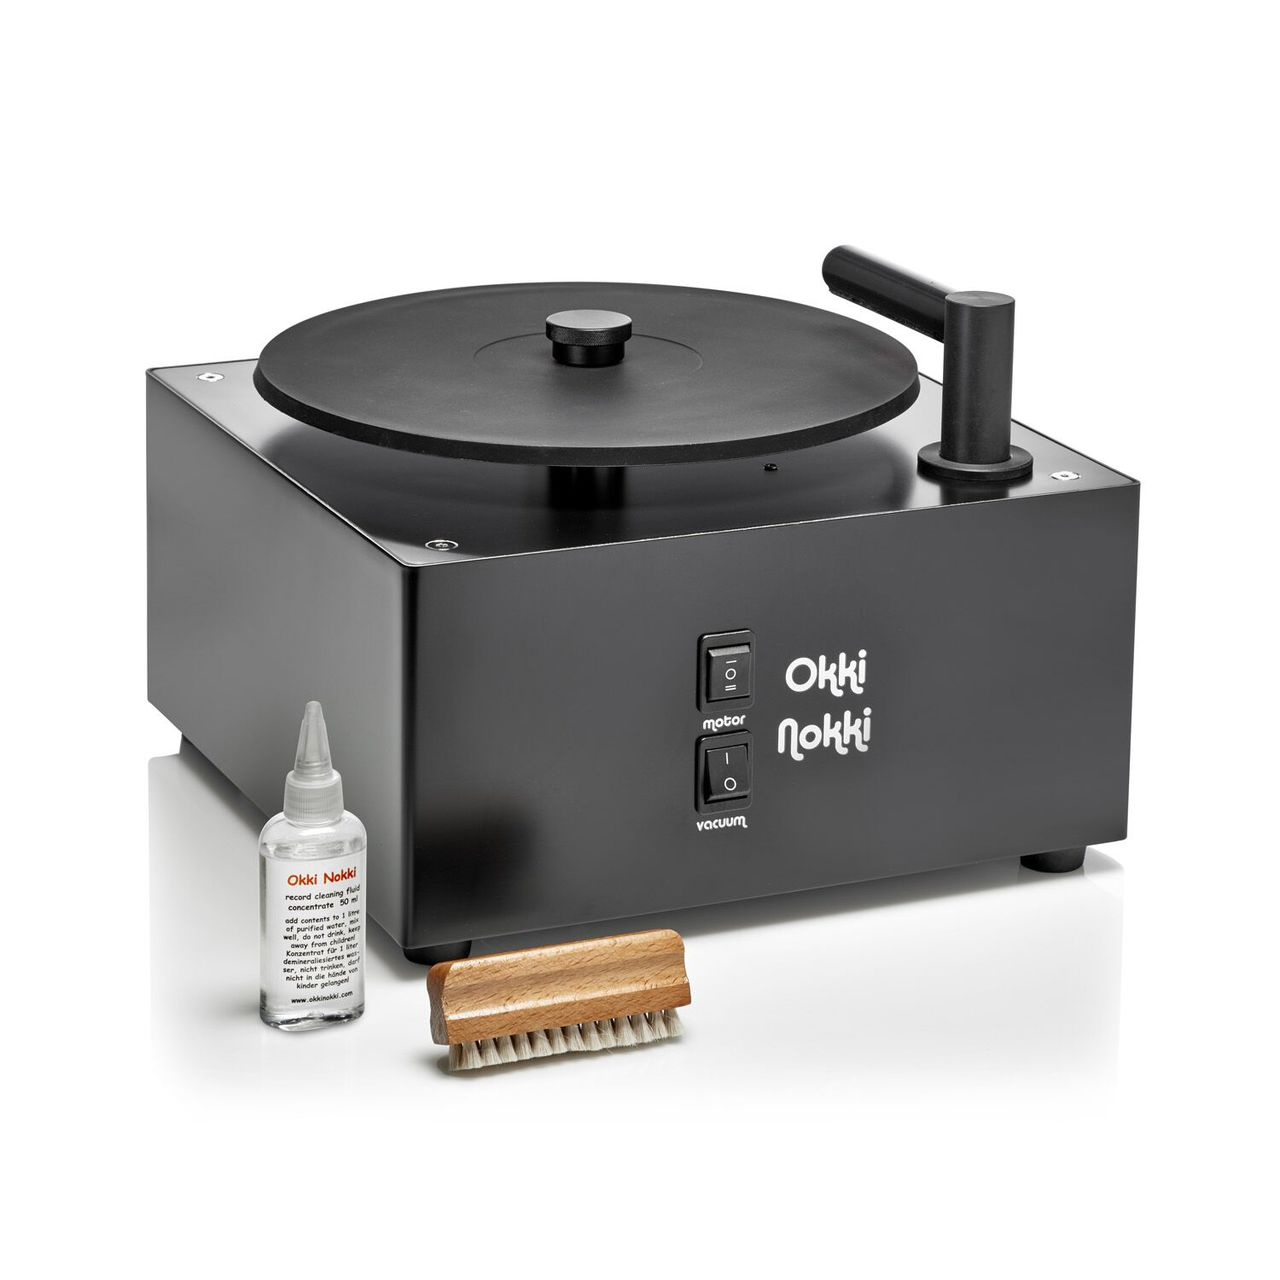 Okki Nokki Record Cleaner MkII  New Internal Design  Incredible Value